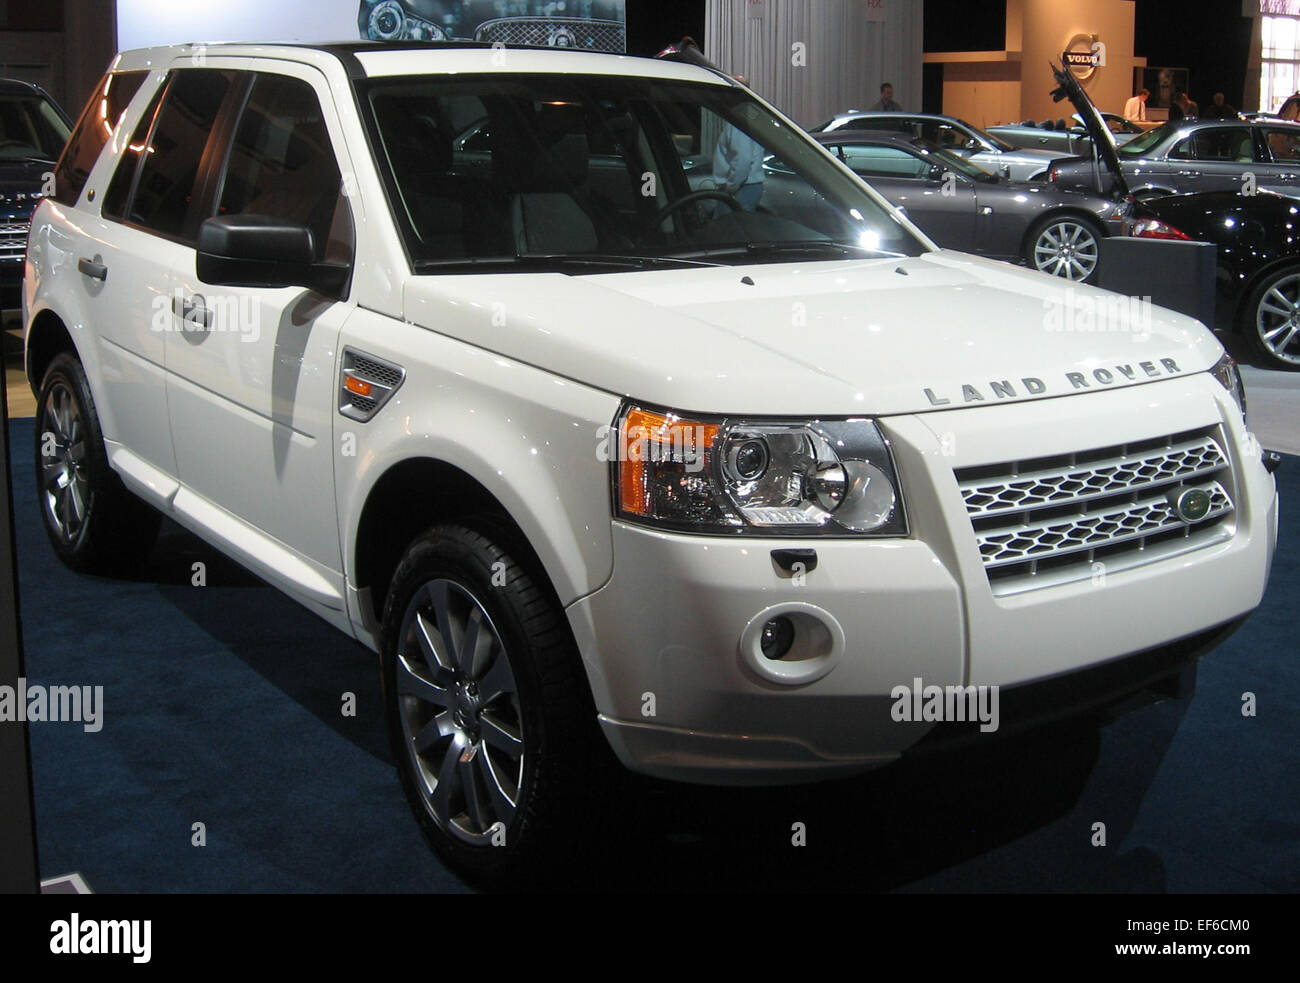 pic sale for landrover rover cargurus overview land cars